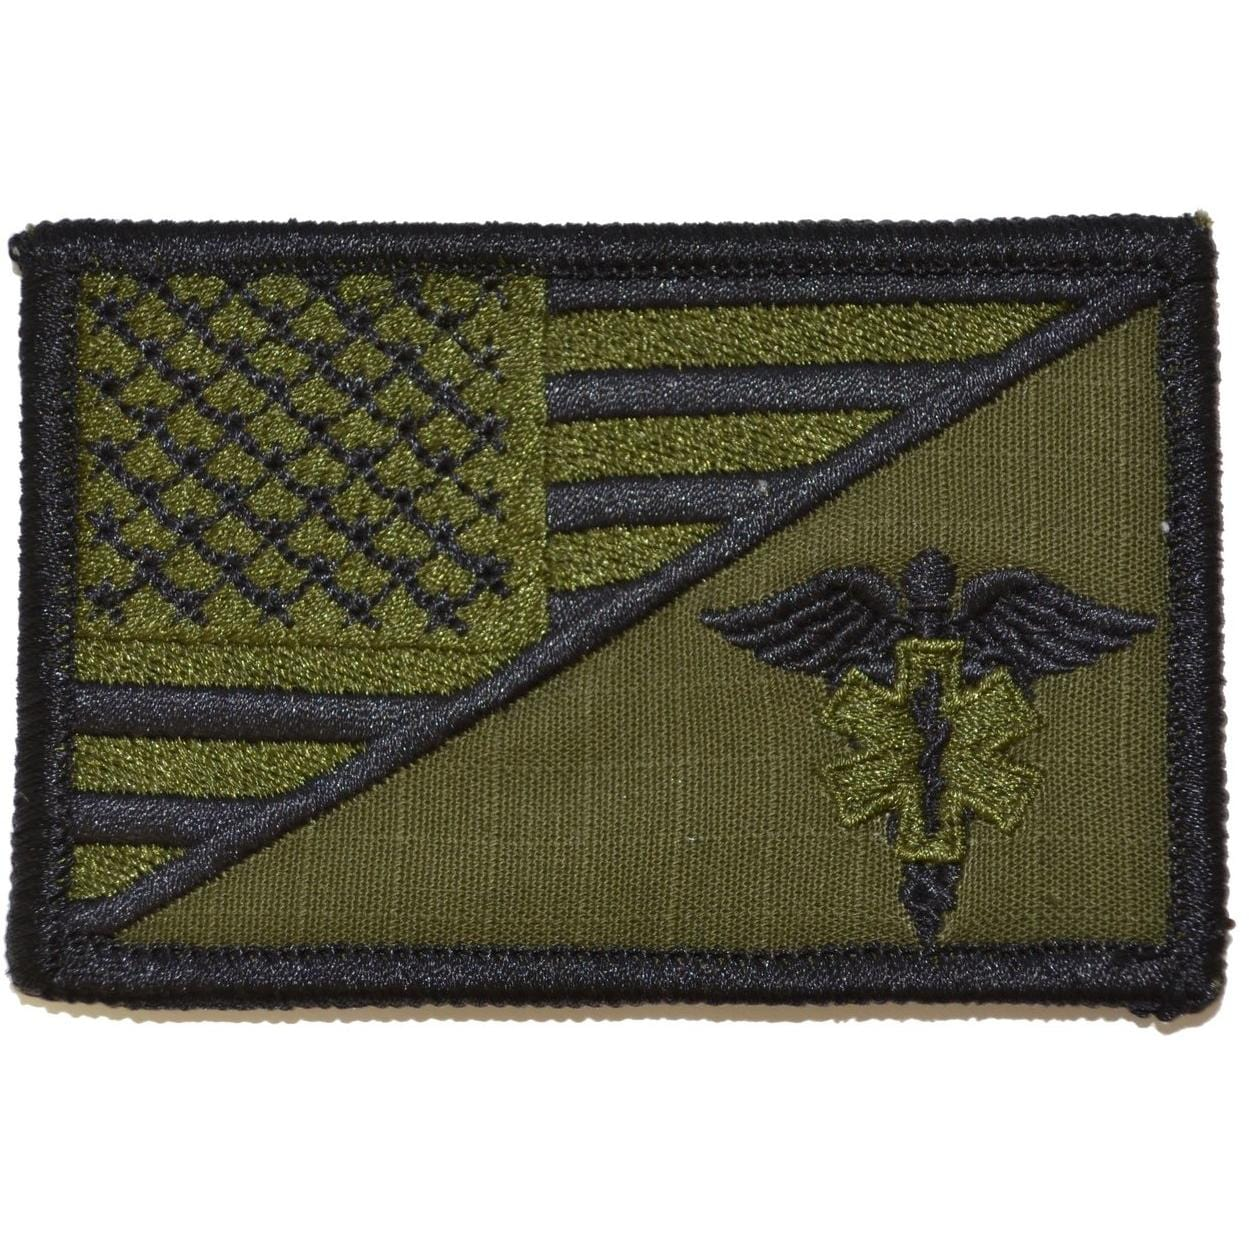 Tactical Gear Junkie Patches Olive Drab EMT Caduceus Star of Life USA Flag - 2.25x3.5 Patch